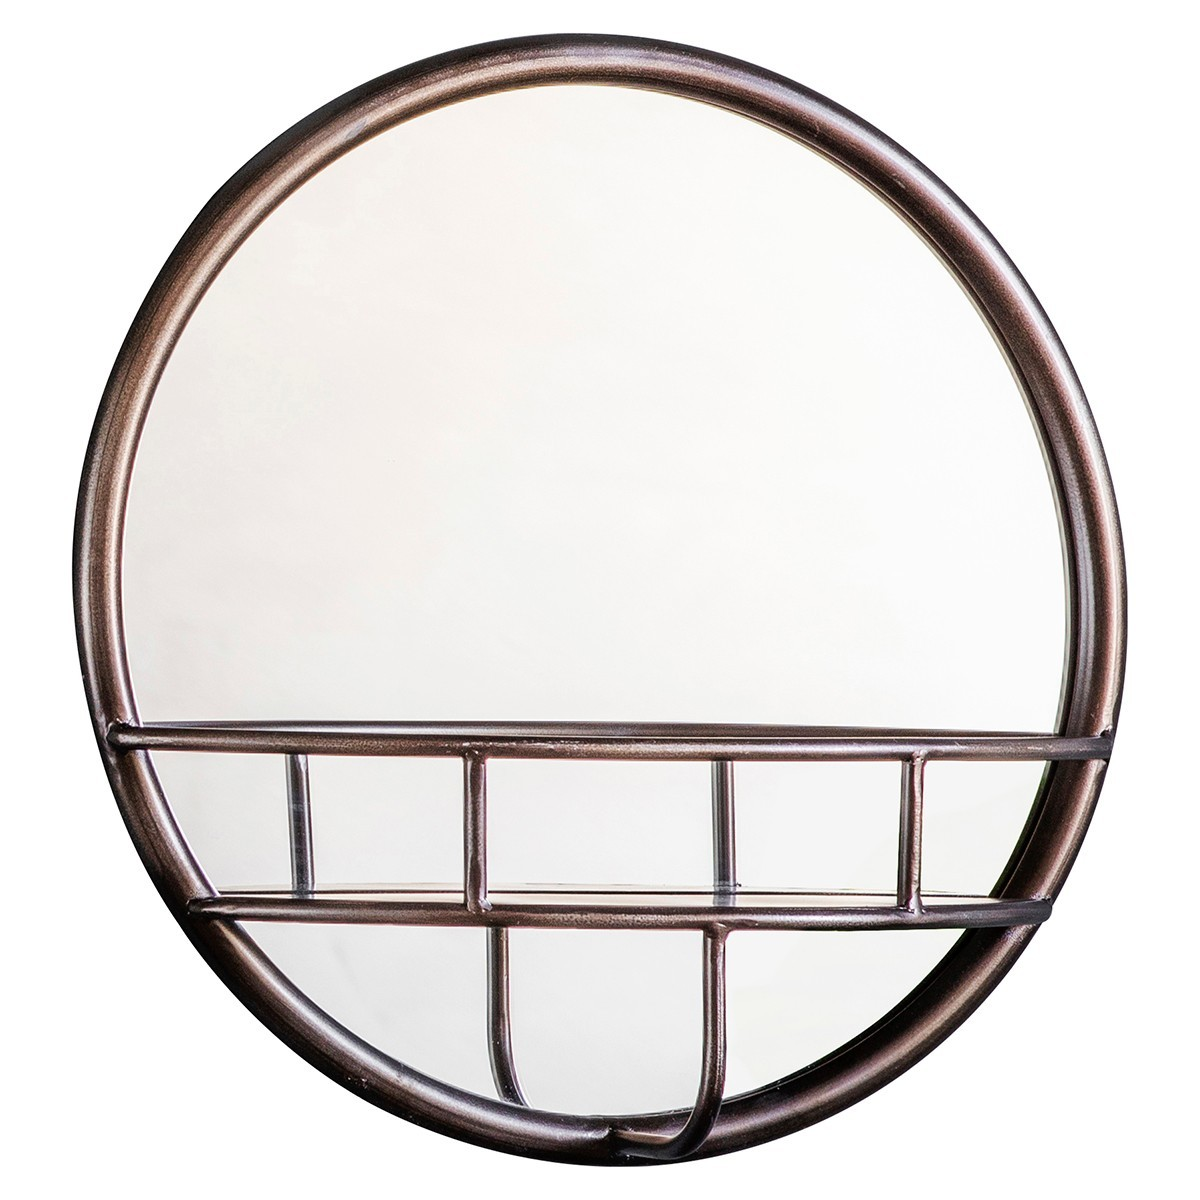 Macey Iron Frame Wall Mirror, Round, 40cm